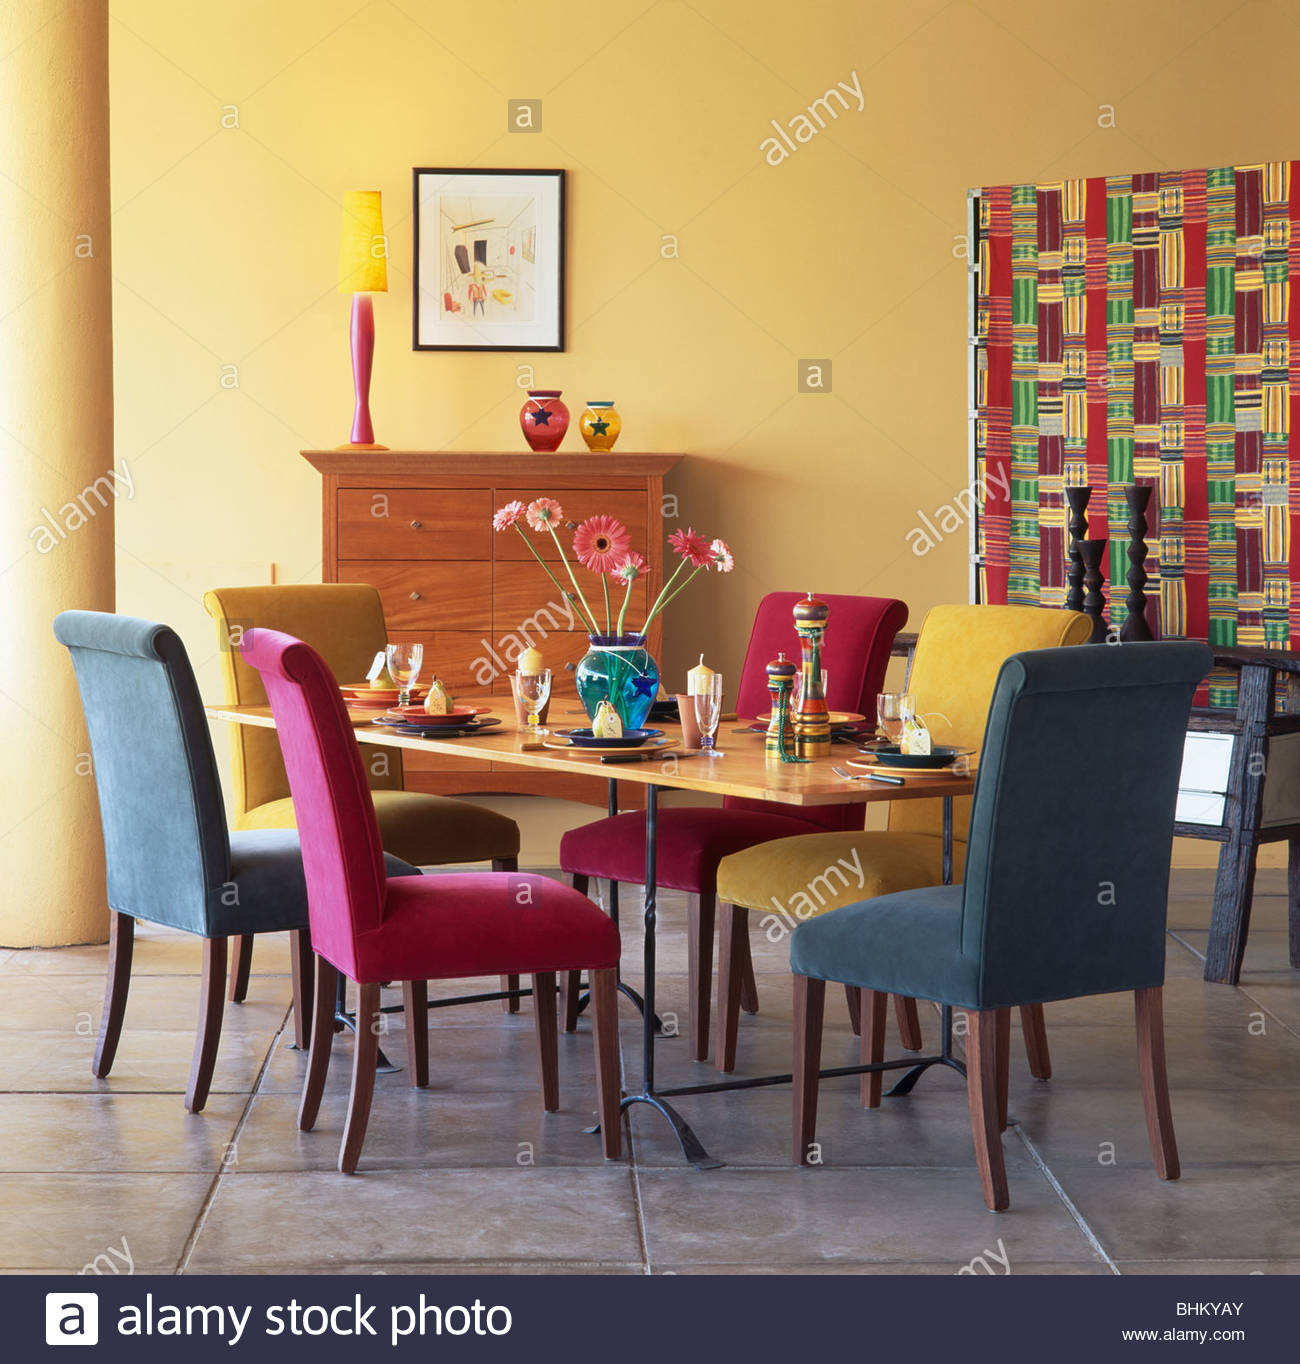 Dining Room Multicolored Chairs Pink Turquoise and Blue Velour Upholstered Dining Chairs